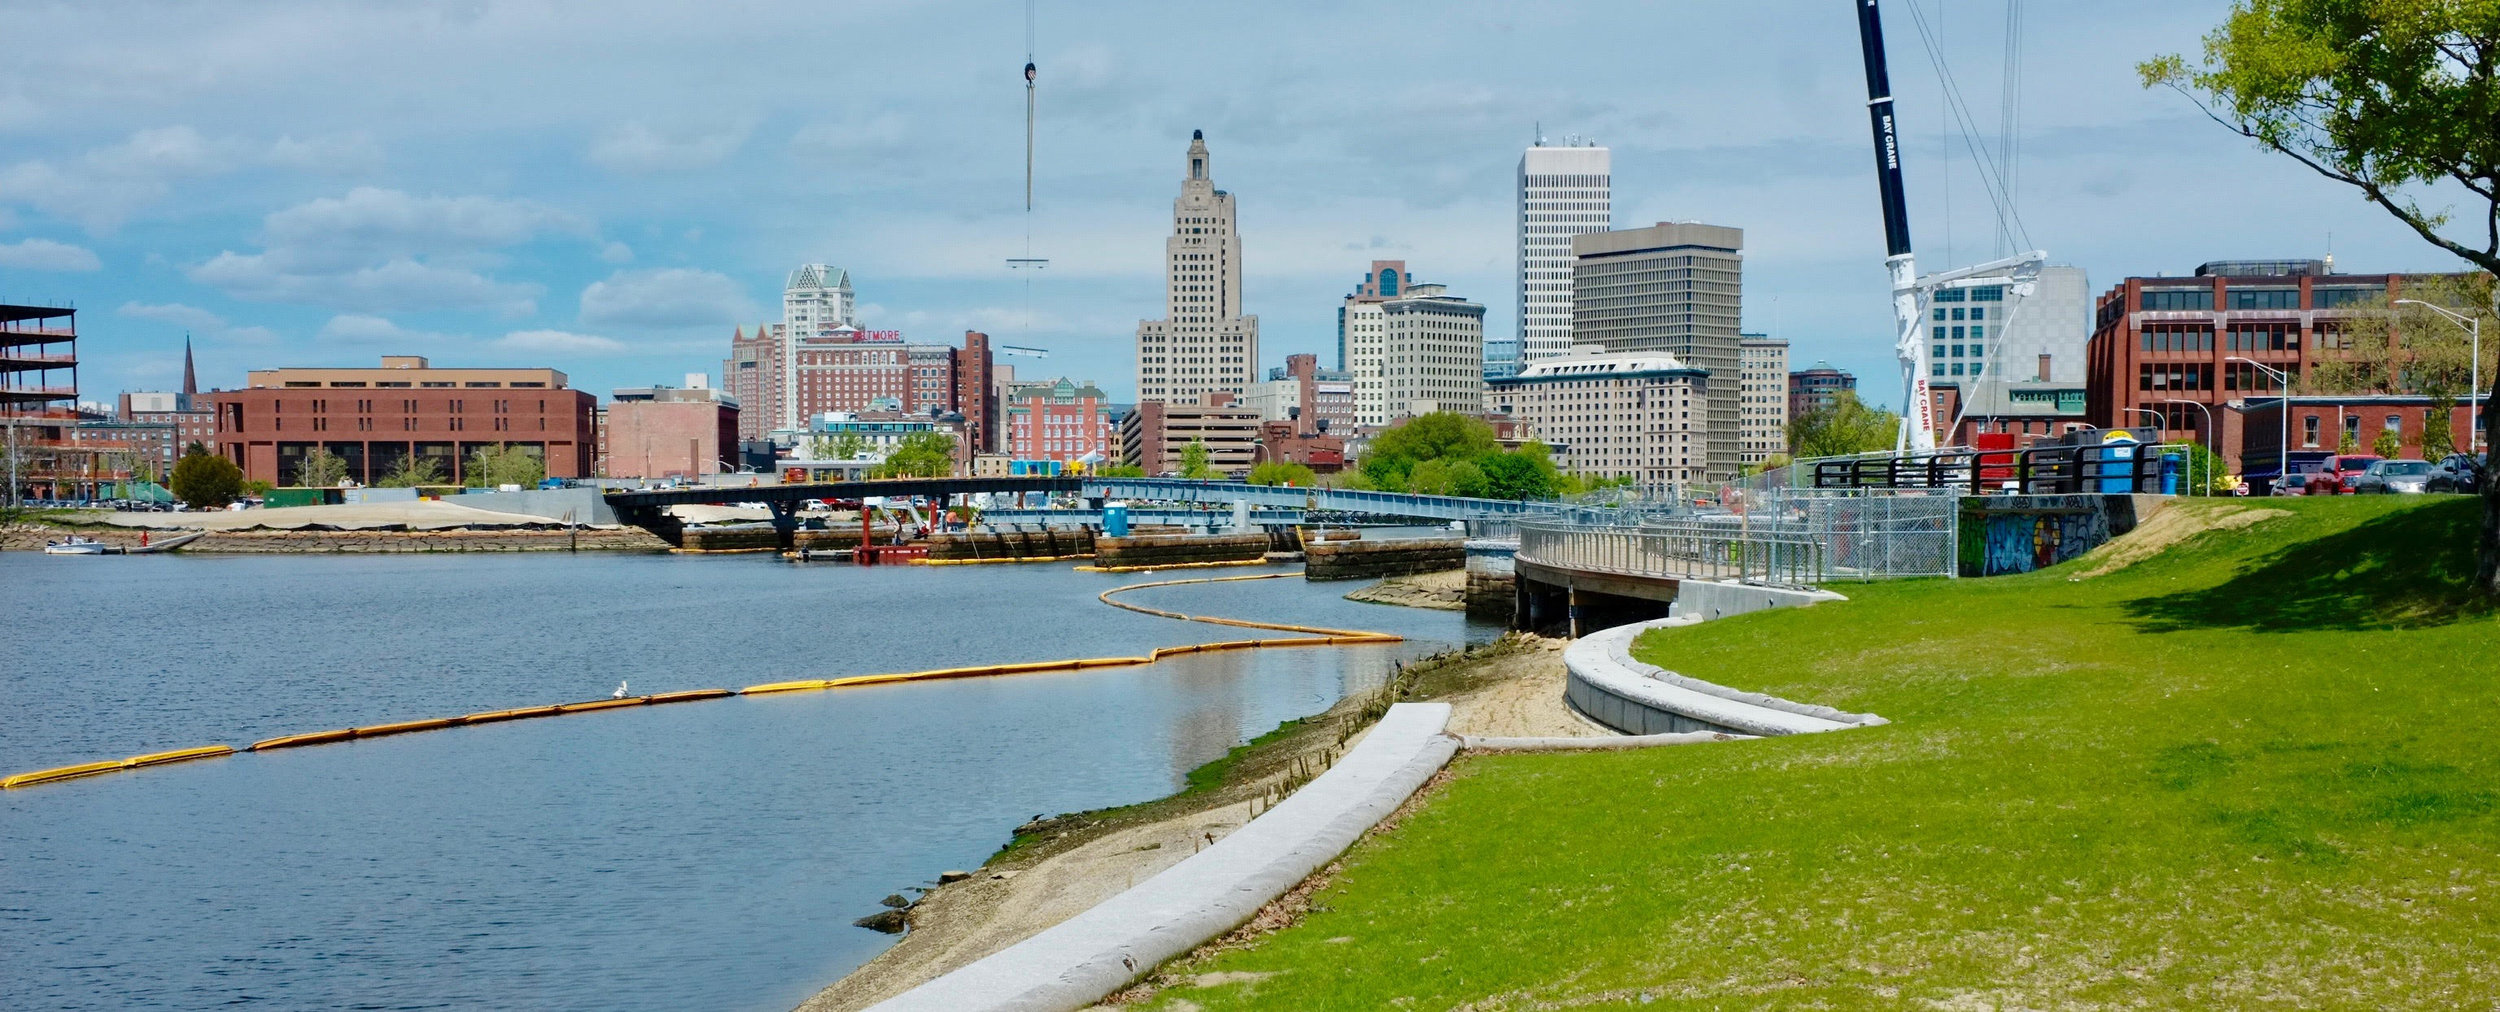 The Providence River where Interstate 195 used to cross.